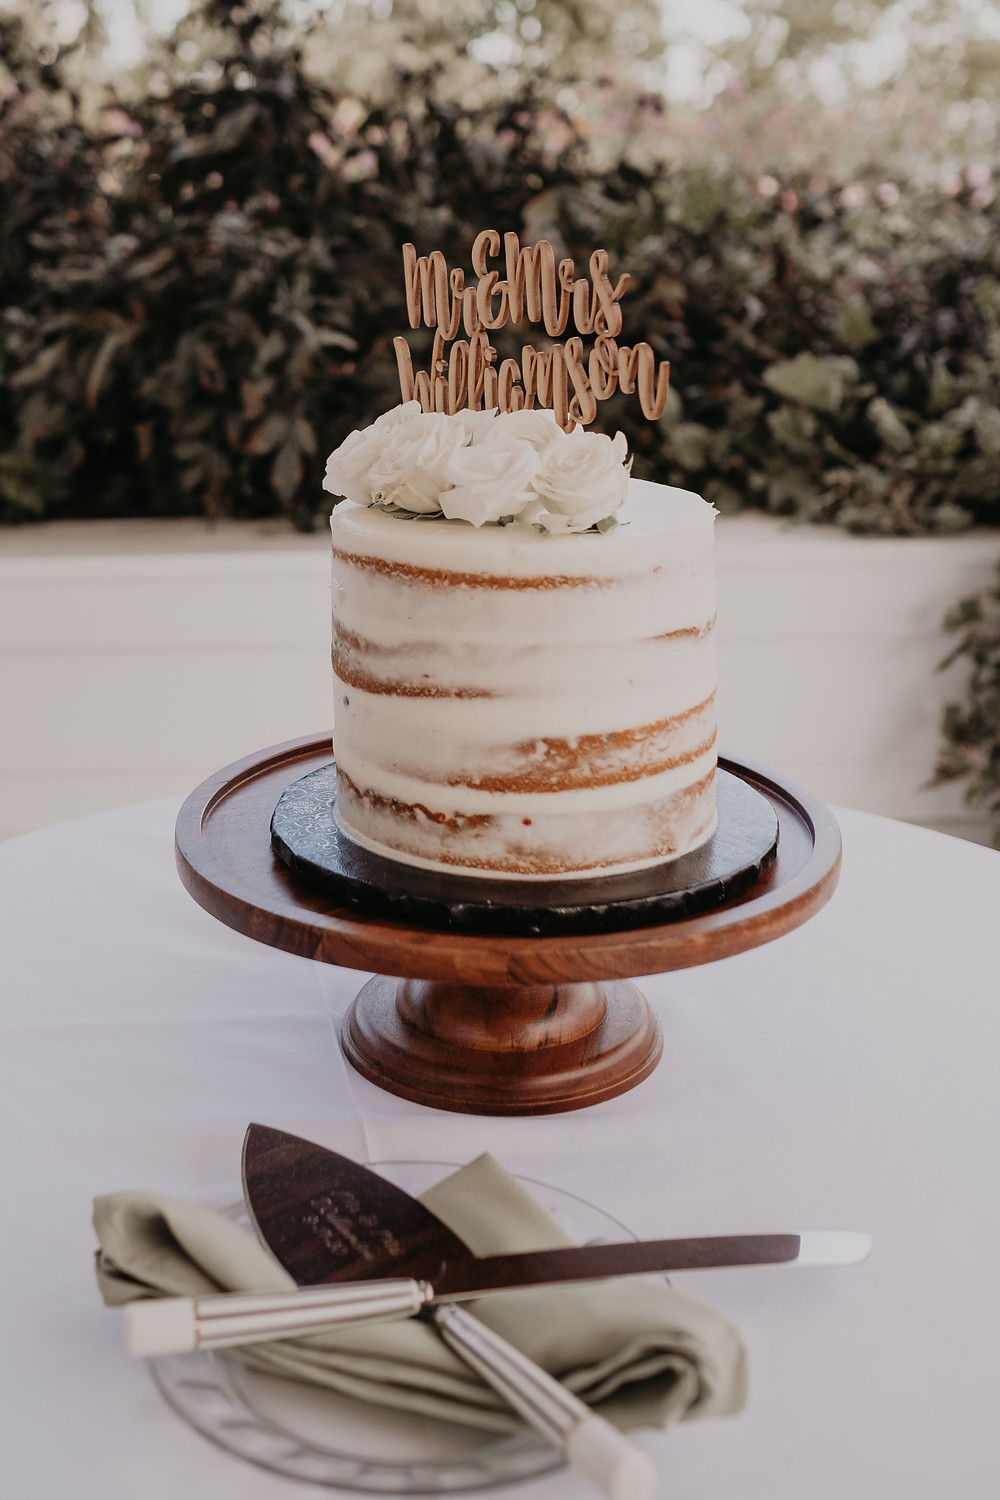 Wedding cake with serving utensils. Photographed by Nicole Leanne Photography.